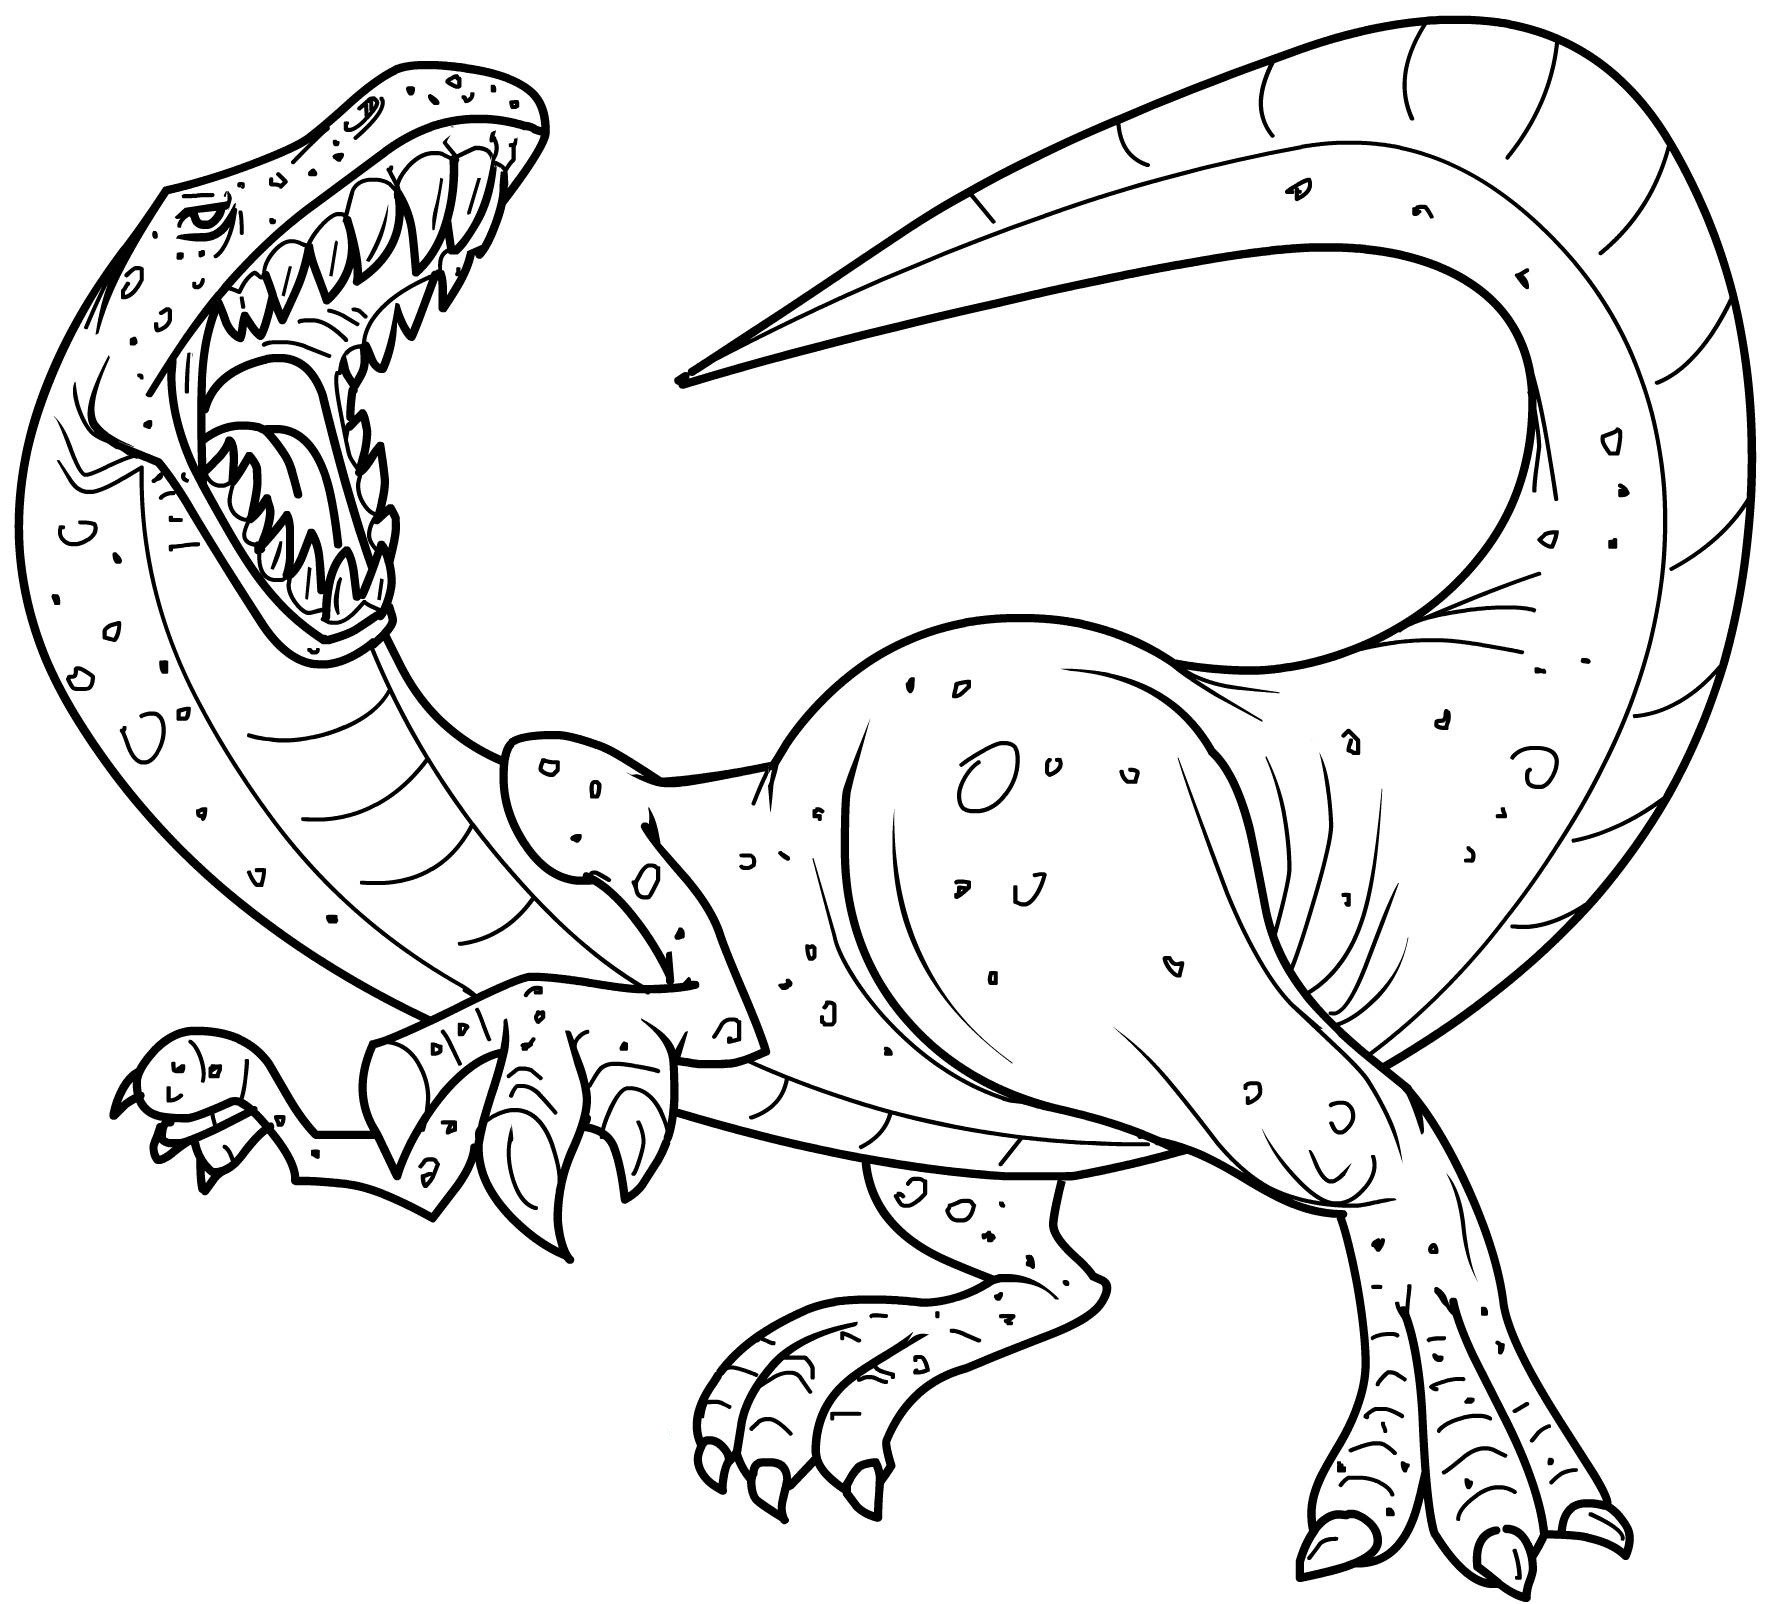 dinosaur colouring pages dinosaur coloring pages to download and print for free pages dinosaur colouring